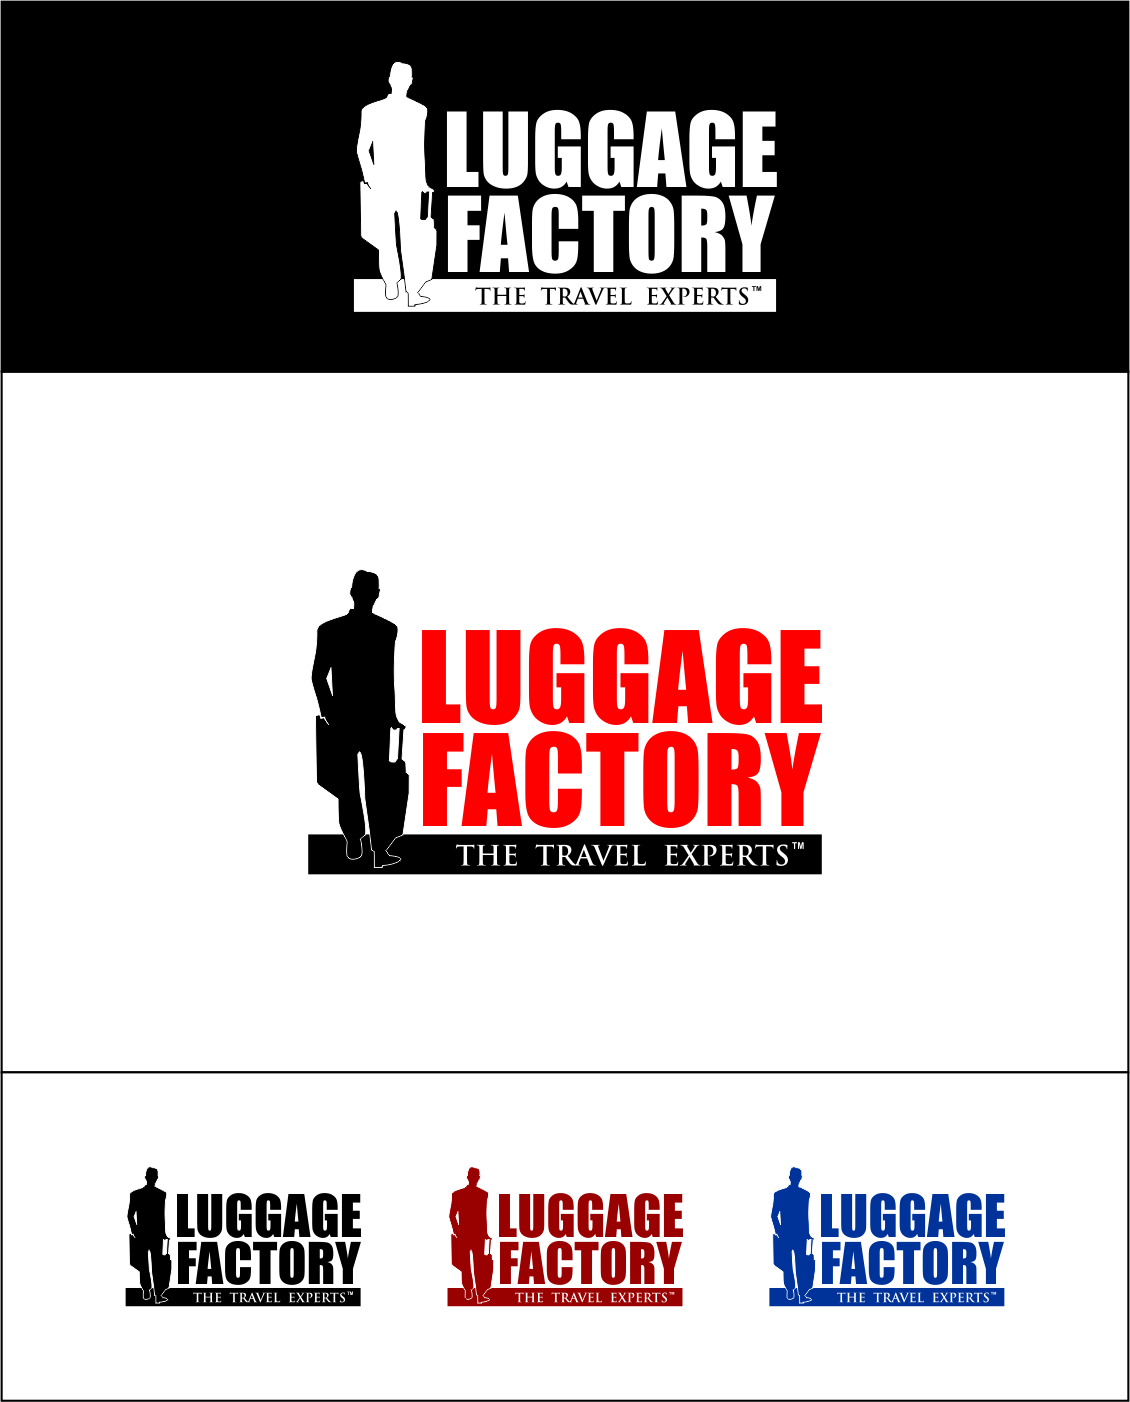 Logo Design by Agus Martoyo - Entry No. 194 in the Logo Design Contest Creative Logo Design for Luggage Factory.